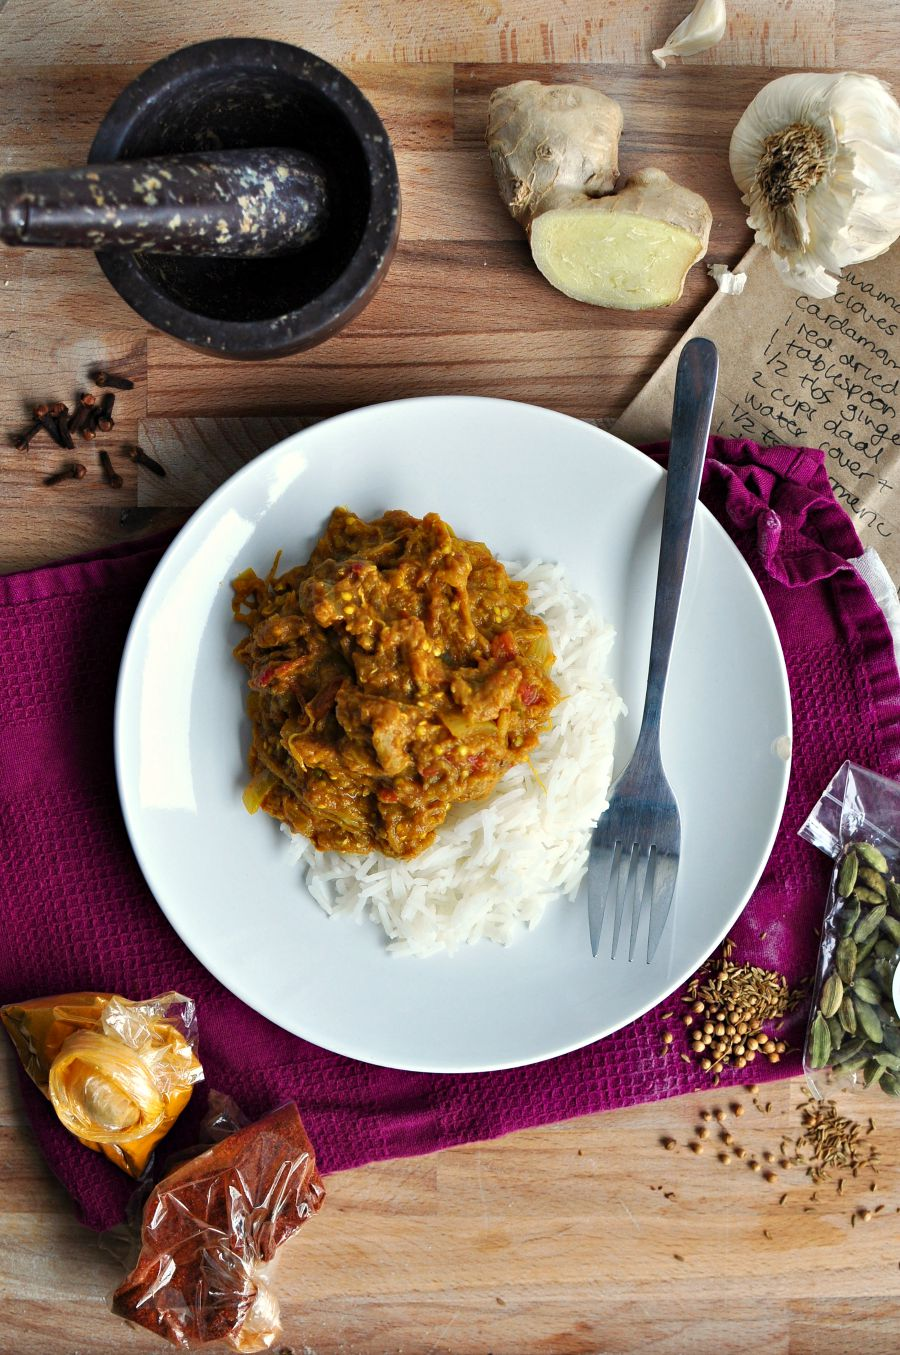 Baingan Bharta + An Indian Feast